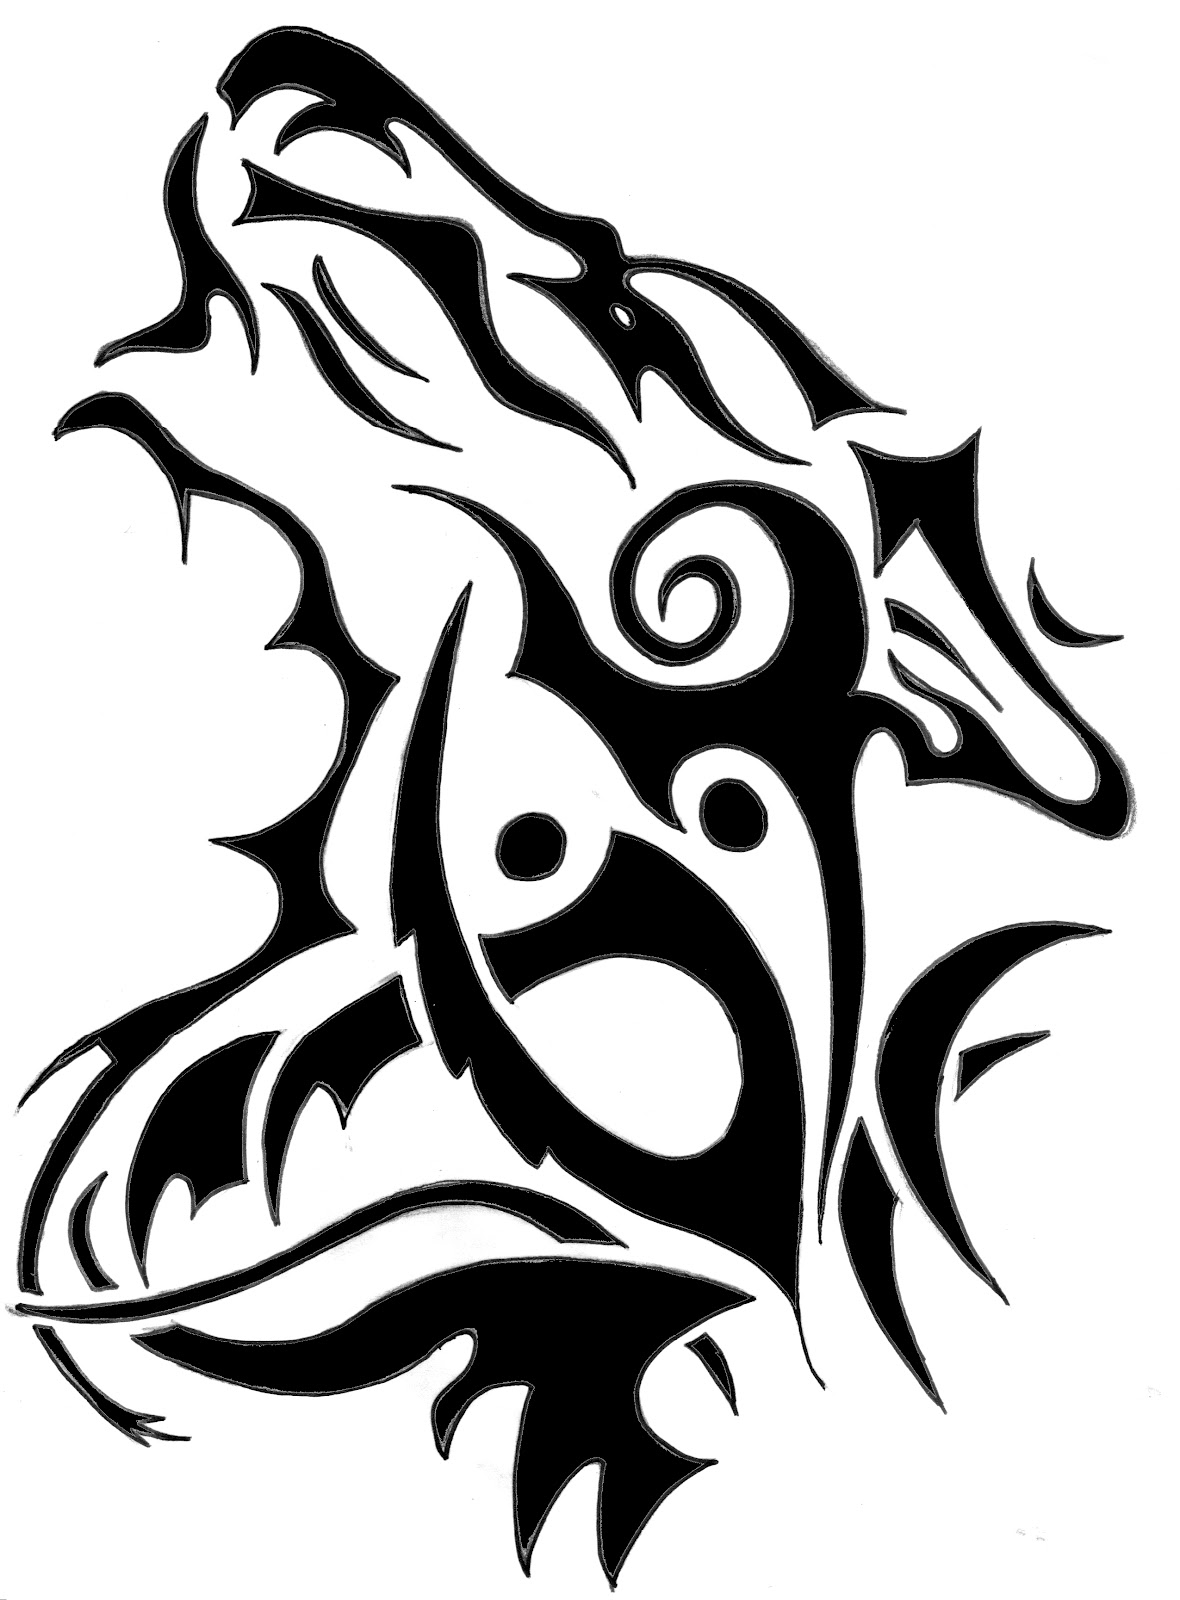 Wolf Outline Drawing - ClipArt Best